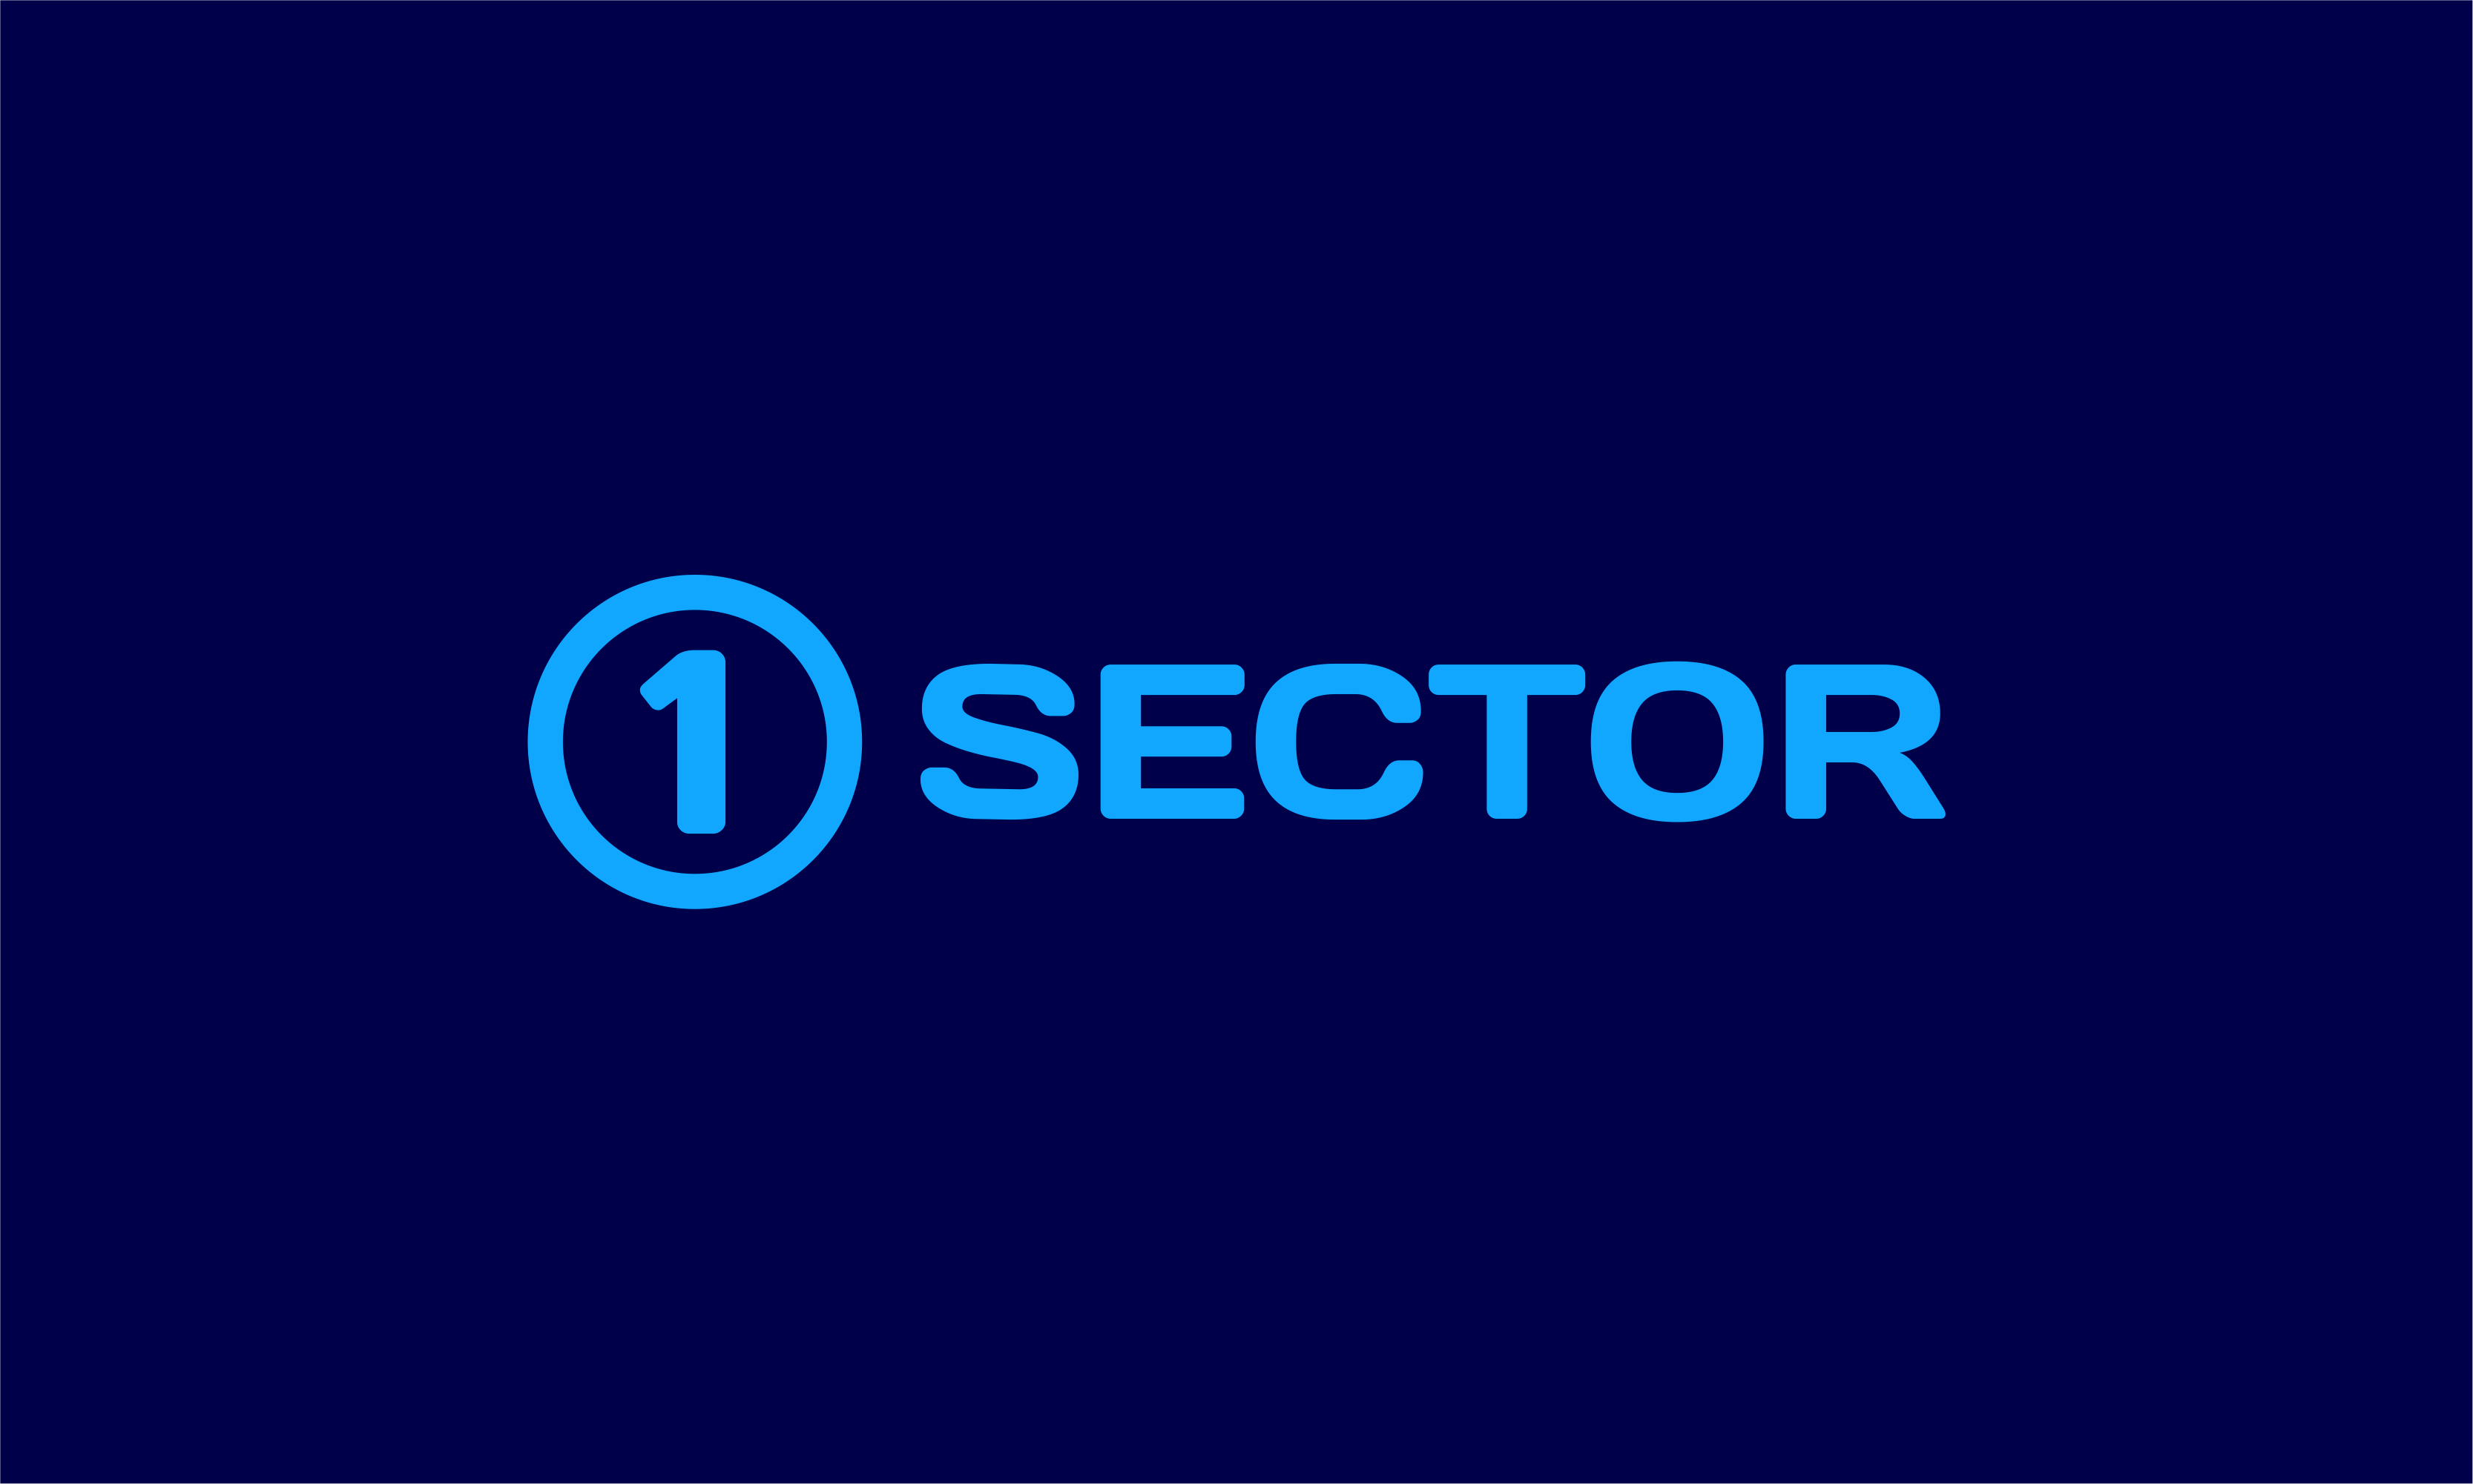 1sector